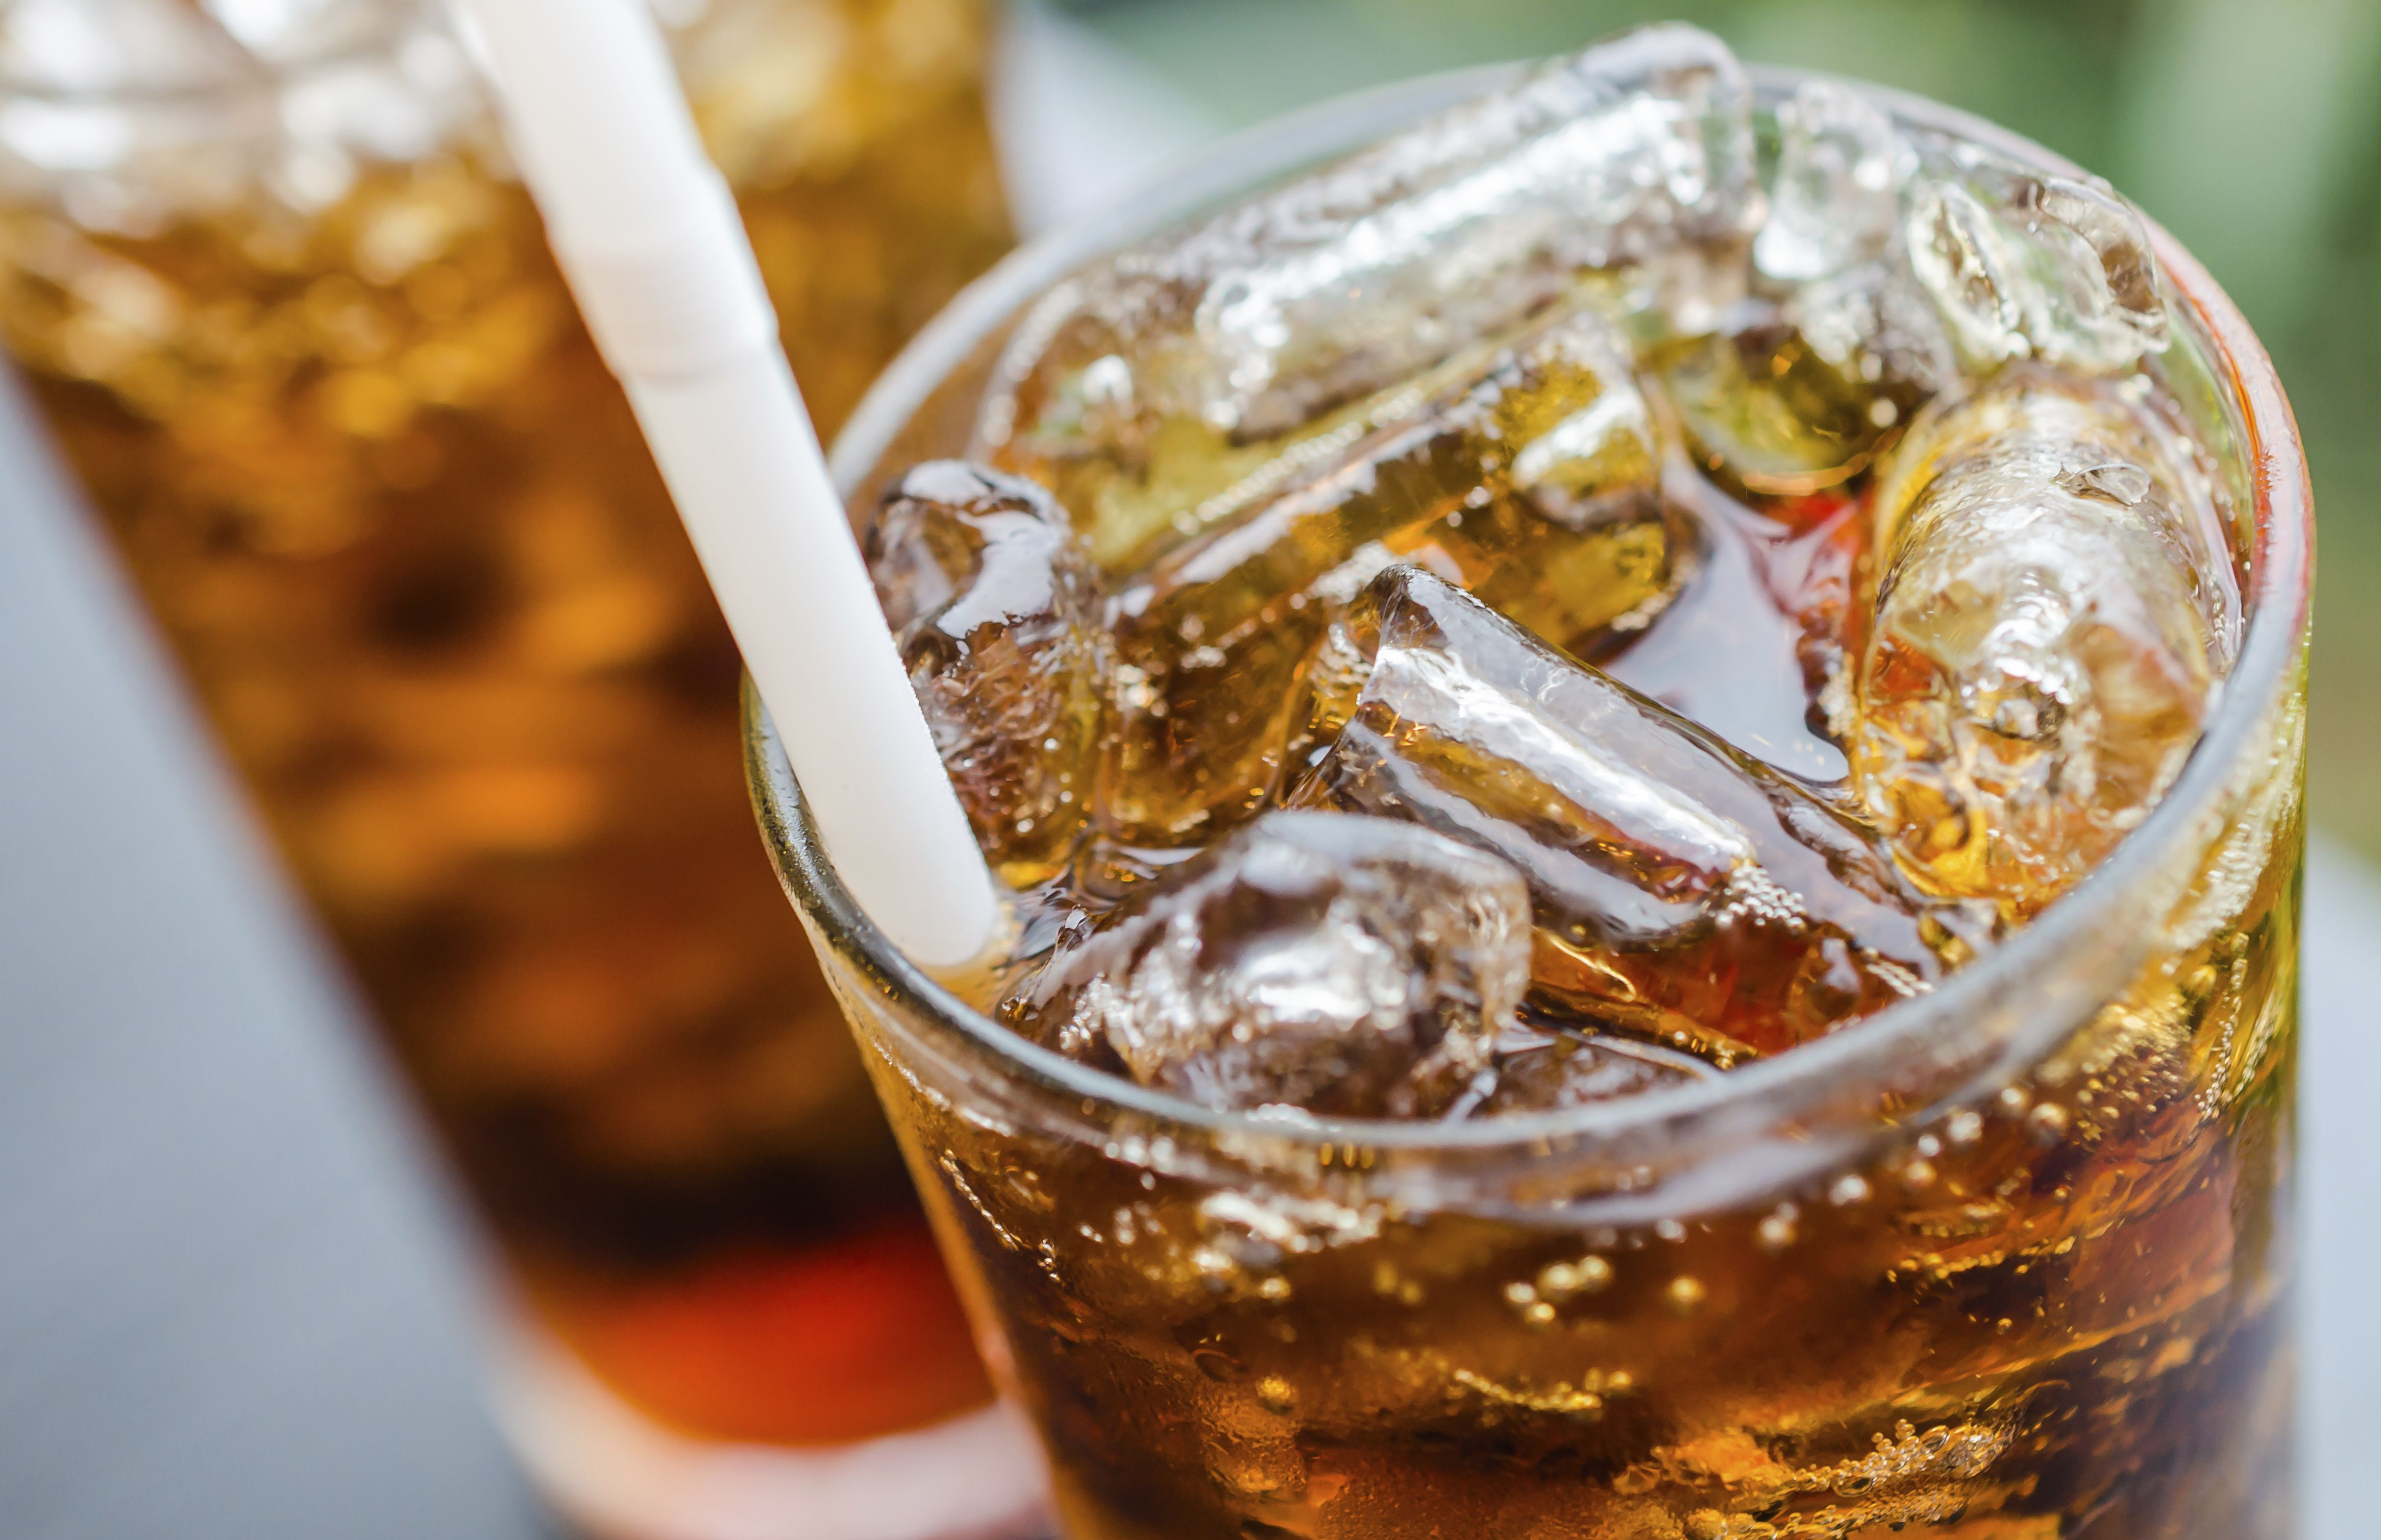 Does drinking soda cause kidney stones? If not what does ...